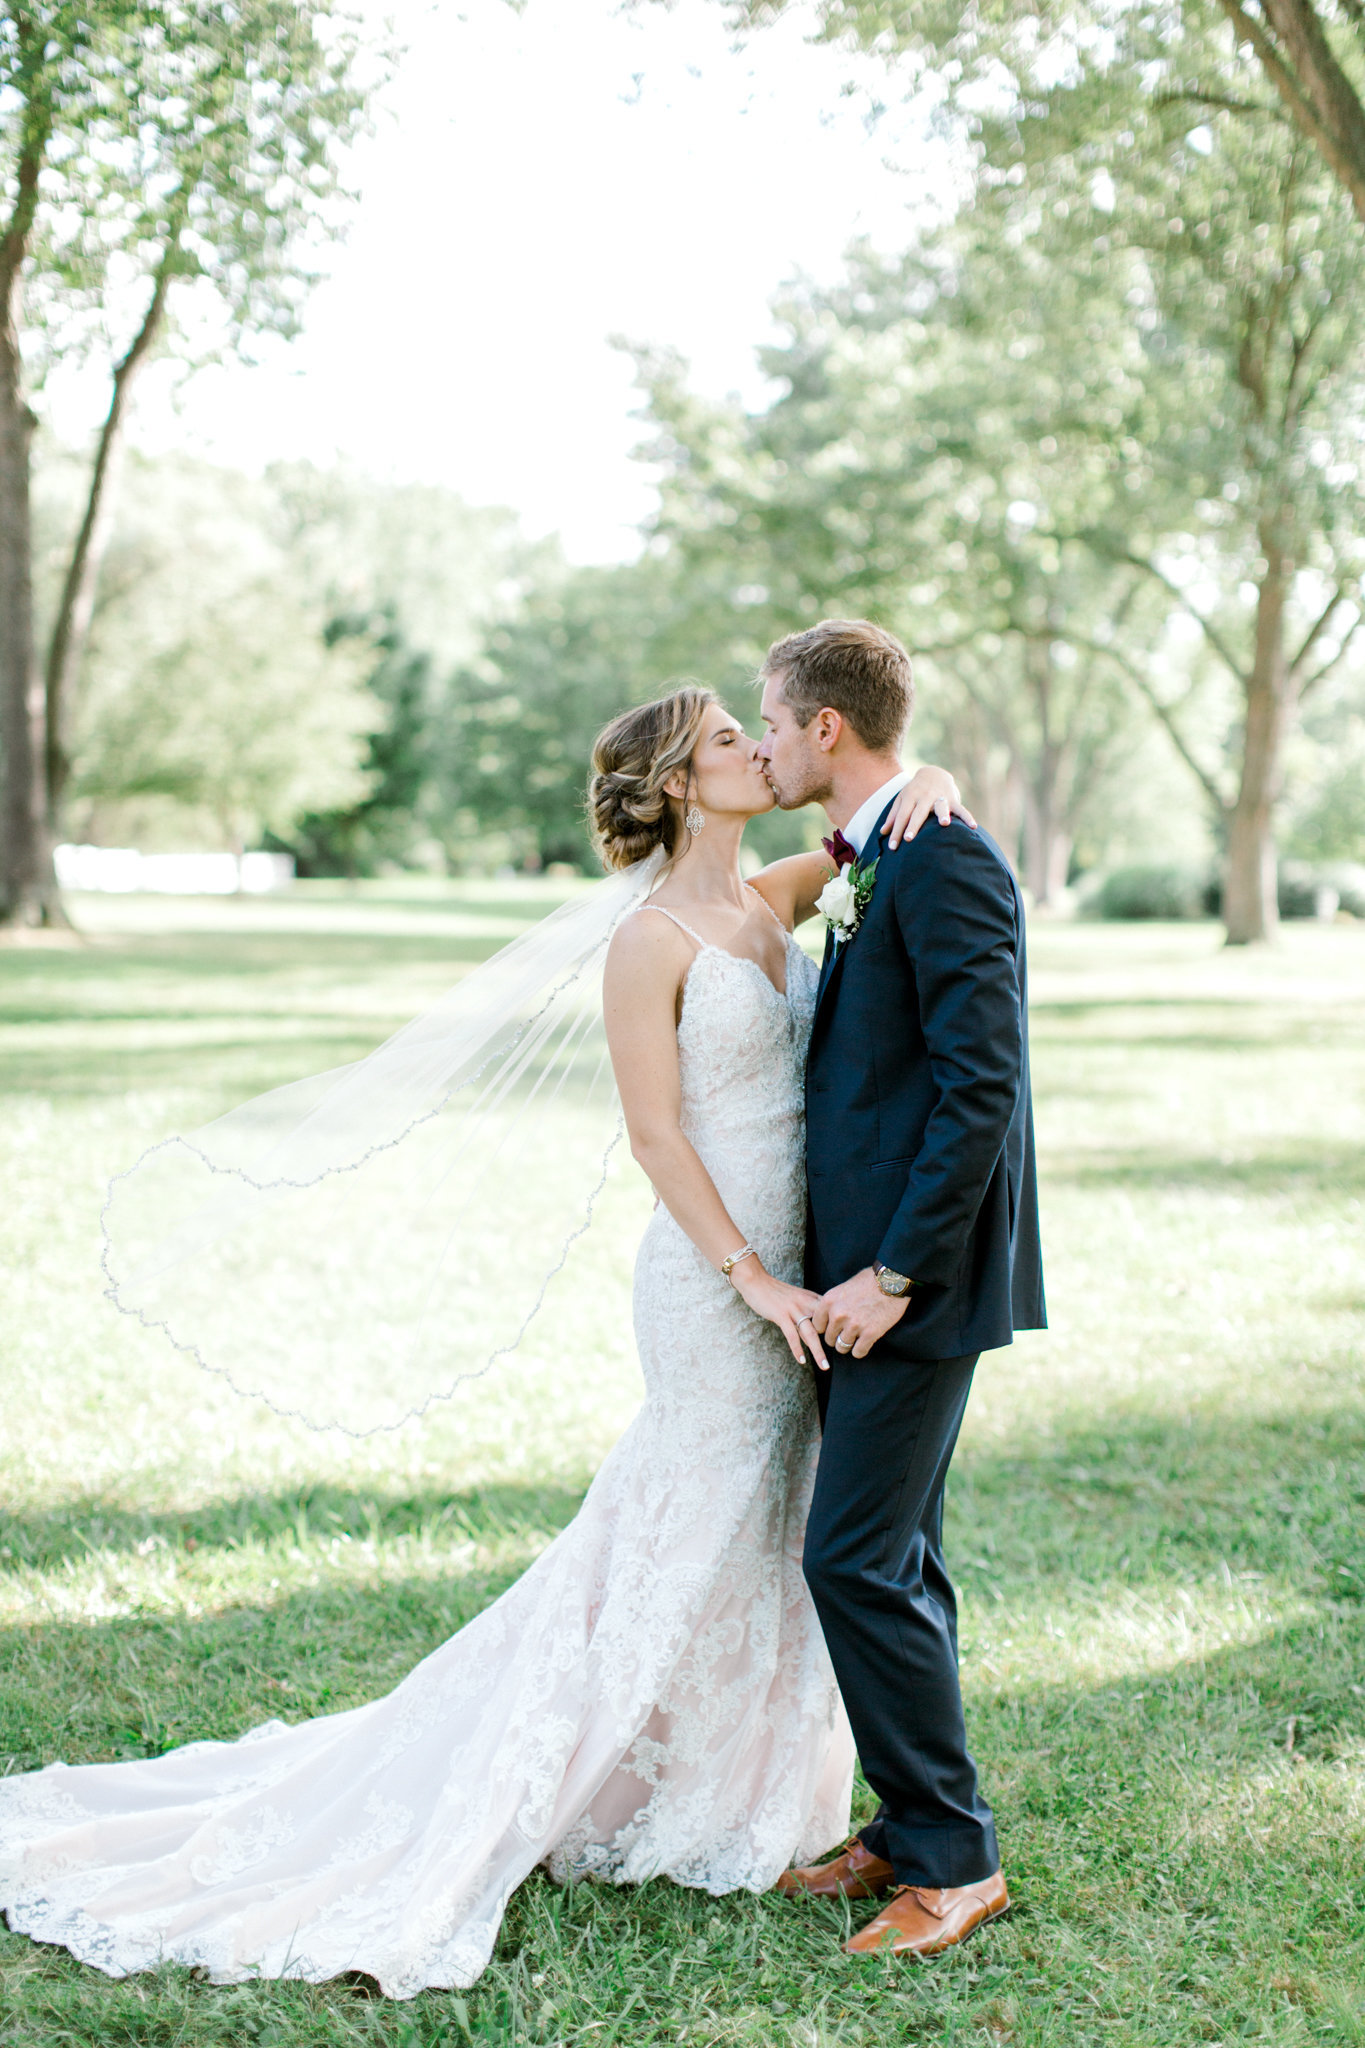 cleveland wedding photographers Austin and rachel -6221